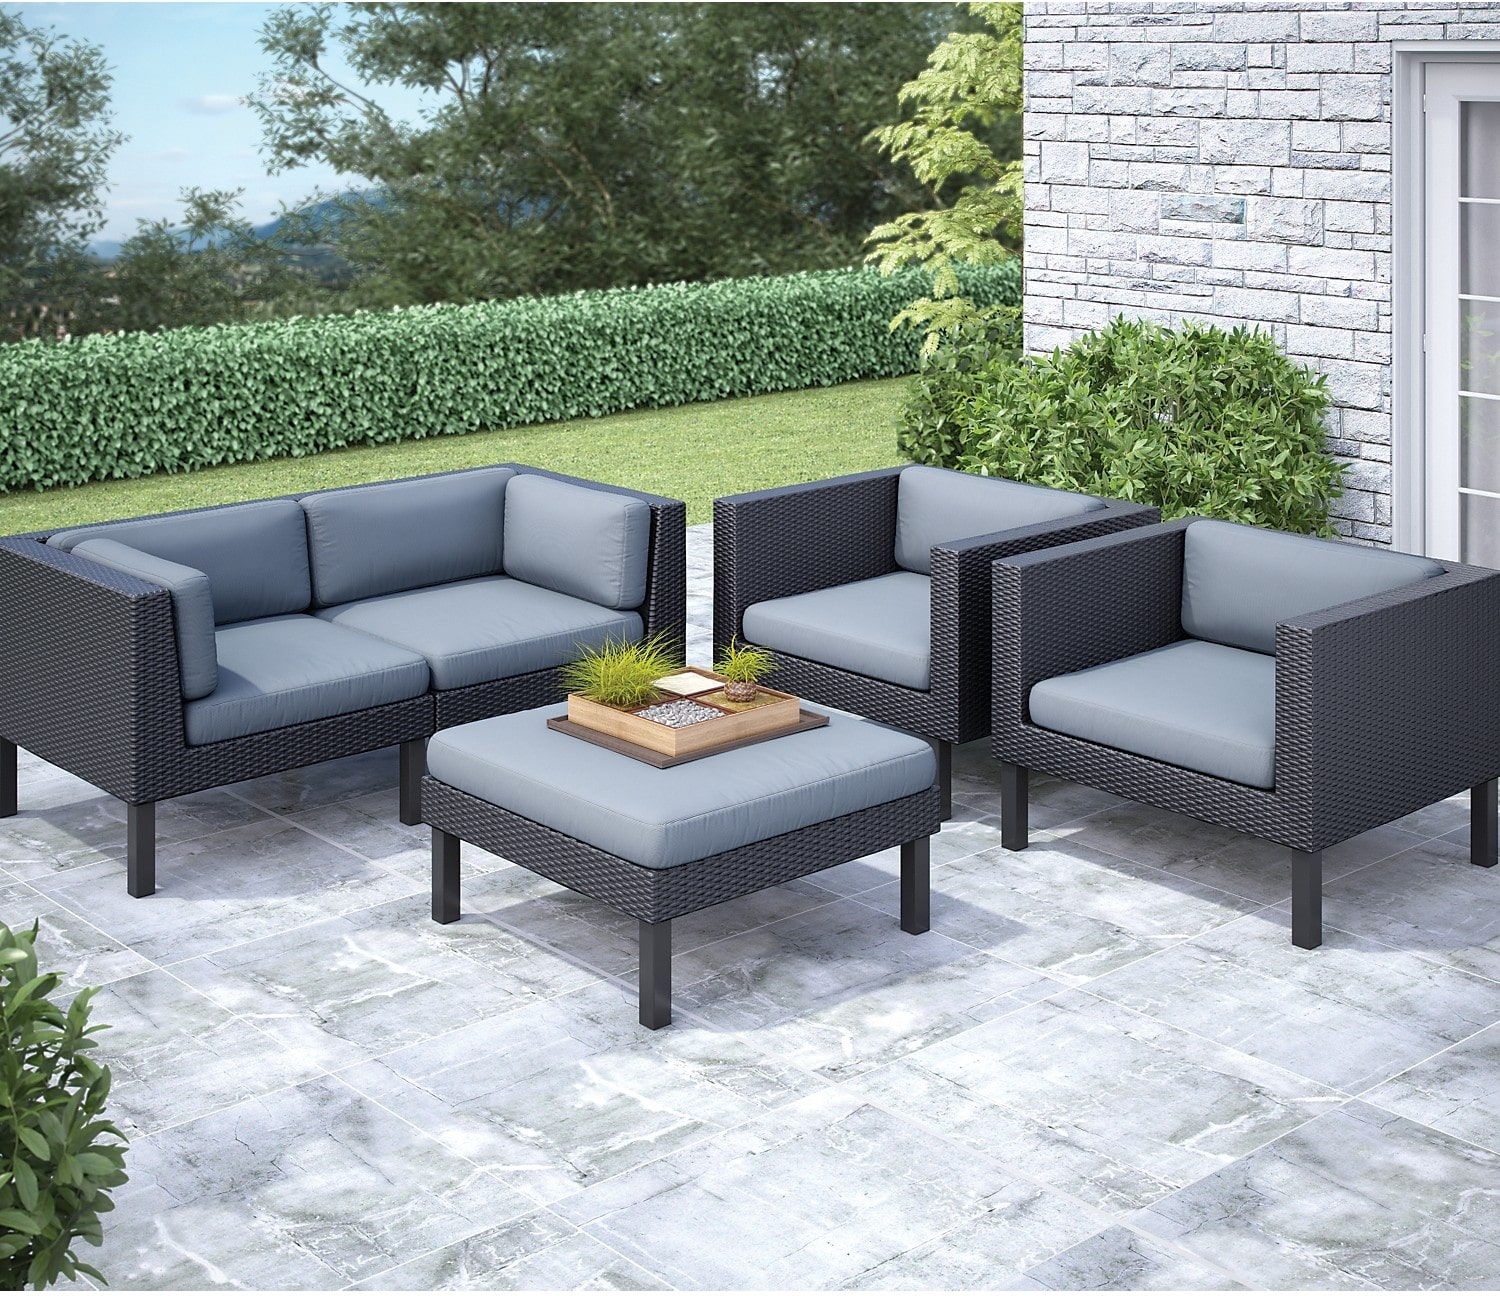 Oakland 5 Piece Patio Conversation Set Black The Brick